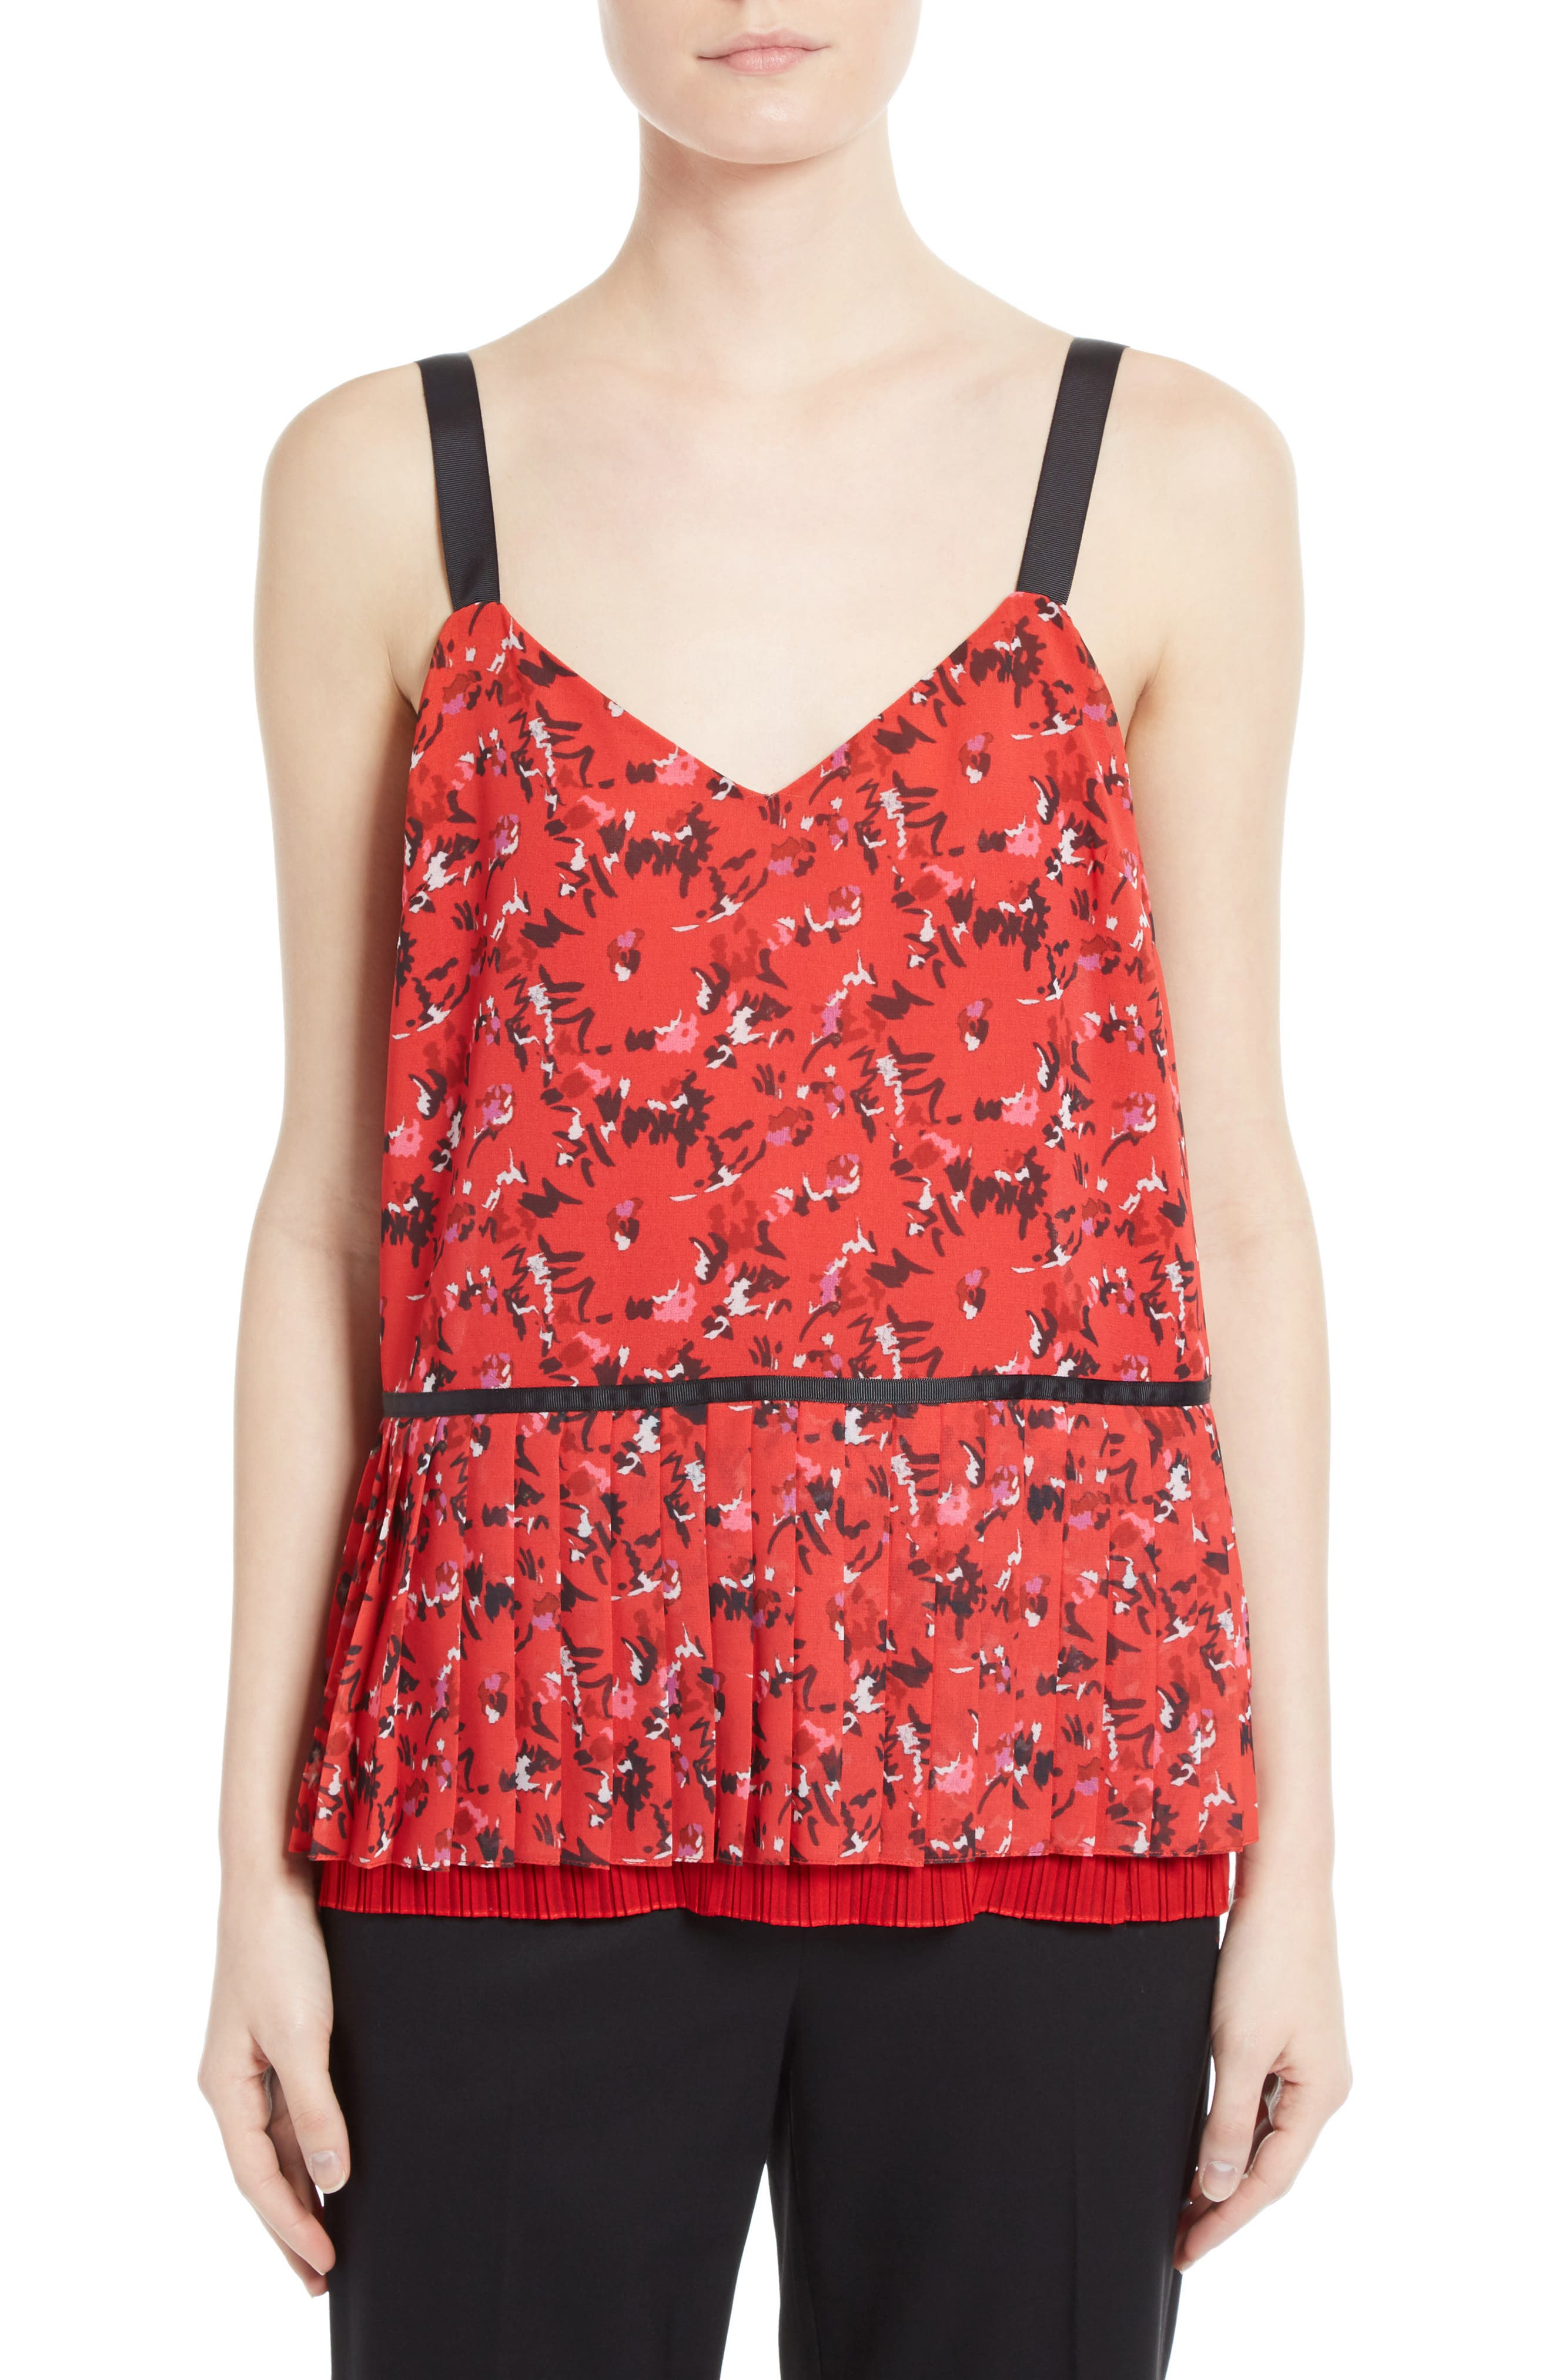 GREY JASON WU Pleated Print Silk Camisole